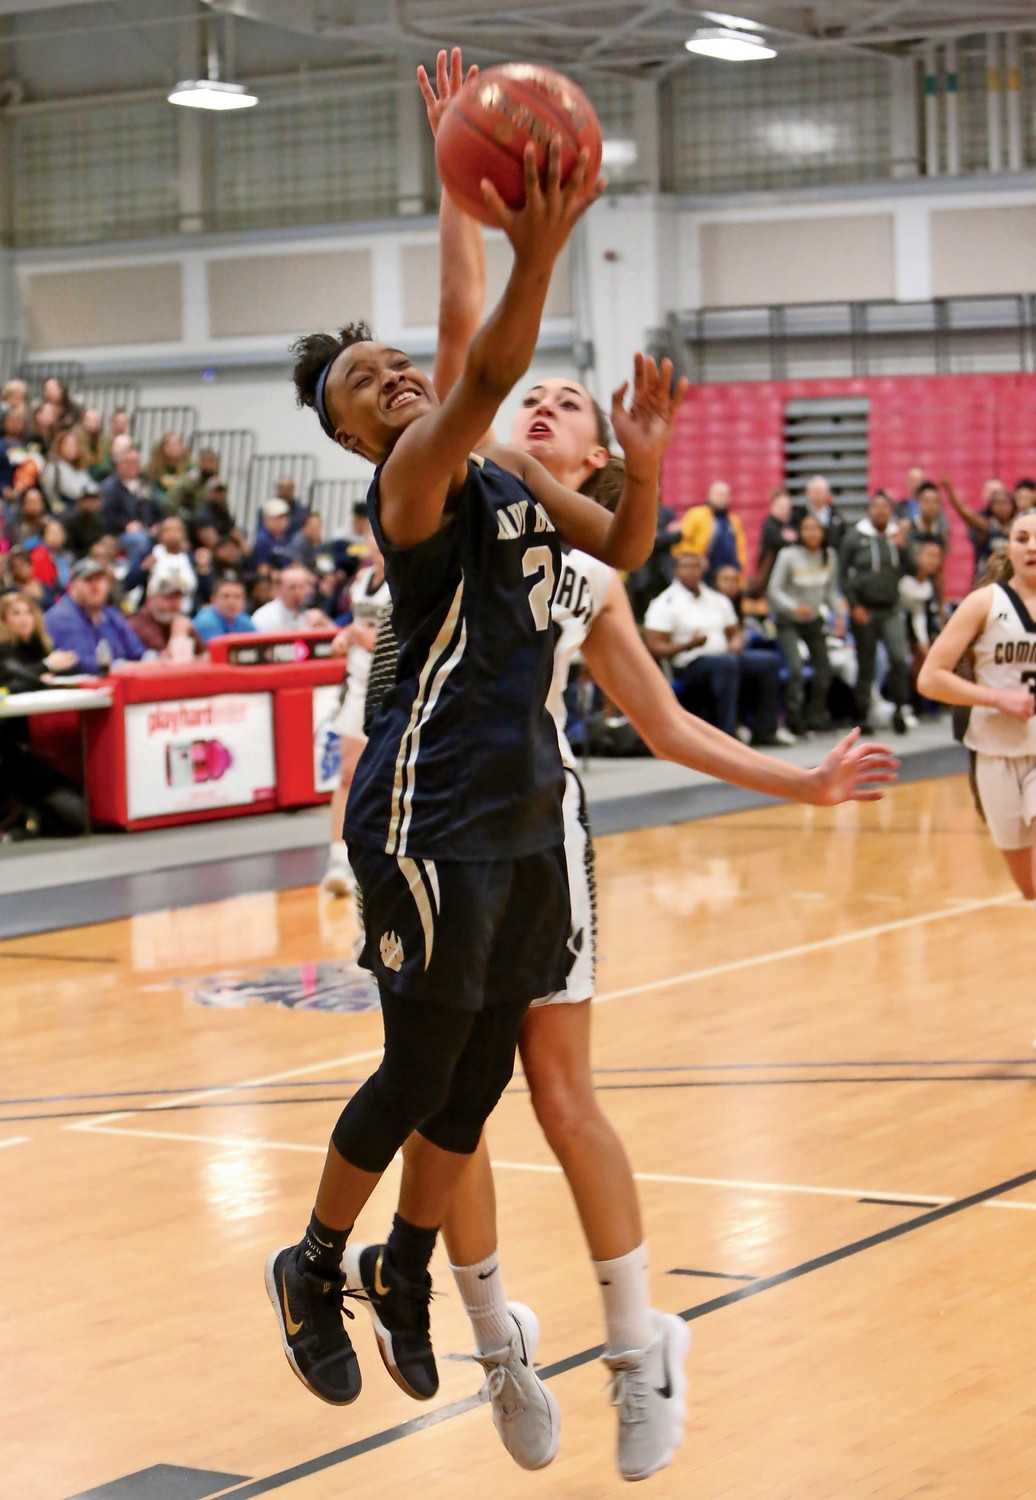 Senior Aziah Hudson scored 18 of her 27 points in the first quarter to help Baldwin build a 31-9 lead against Commack.